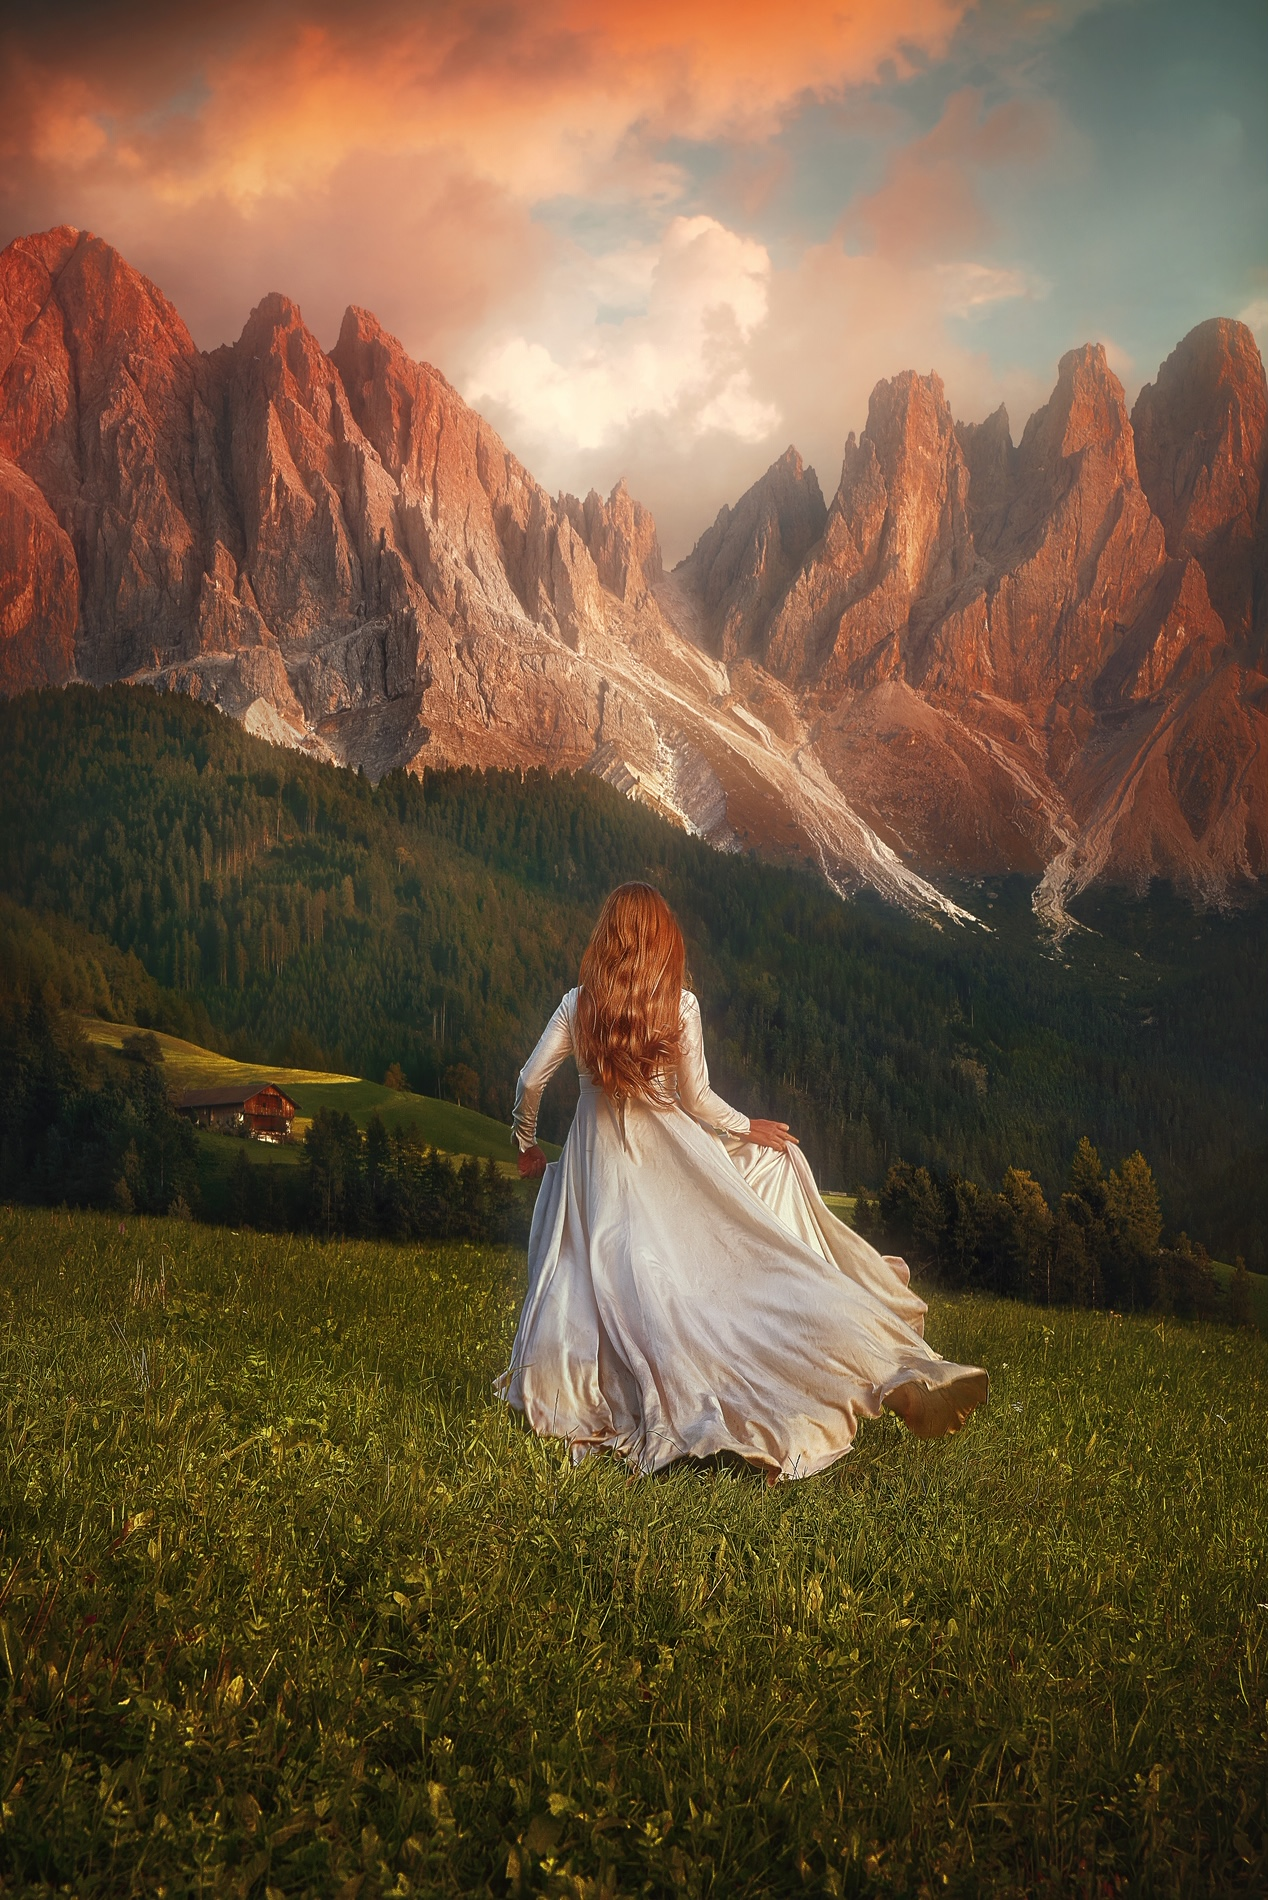 Woman walking with mountains in background